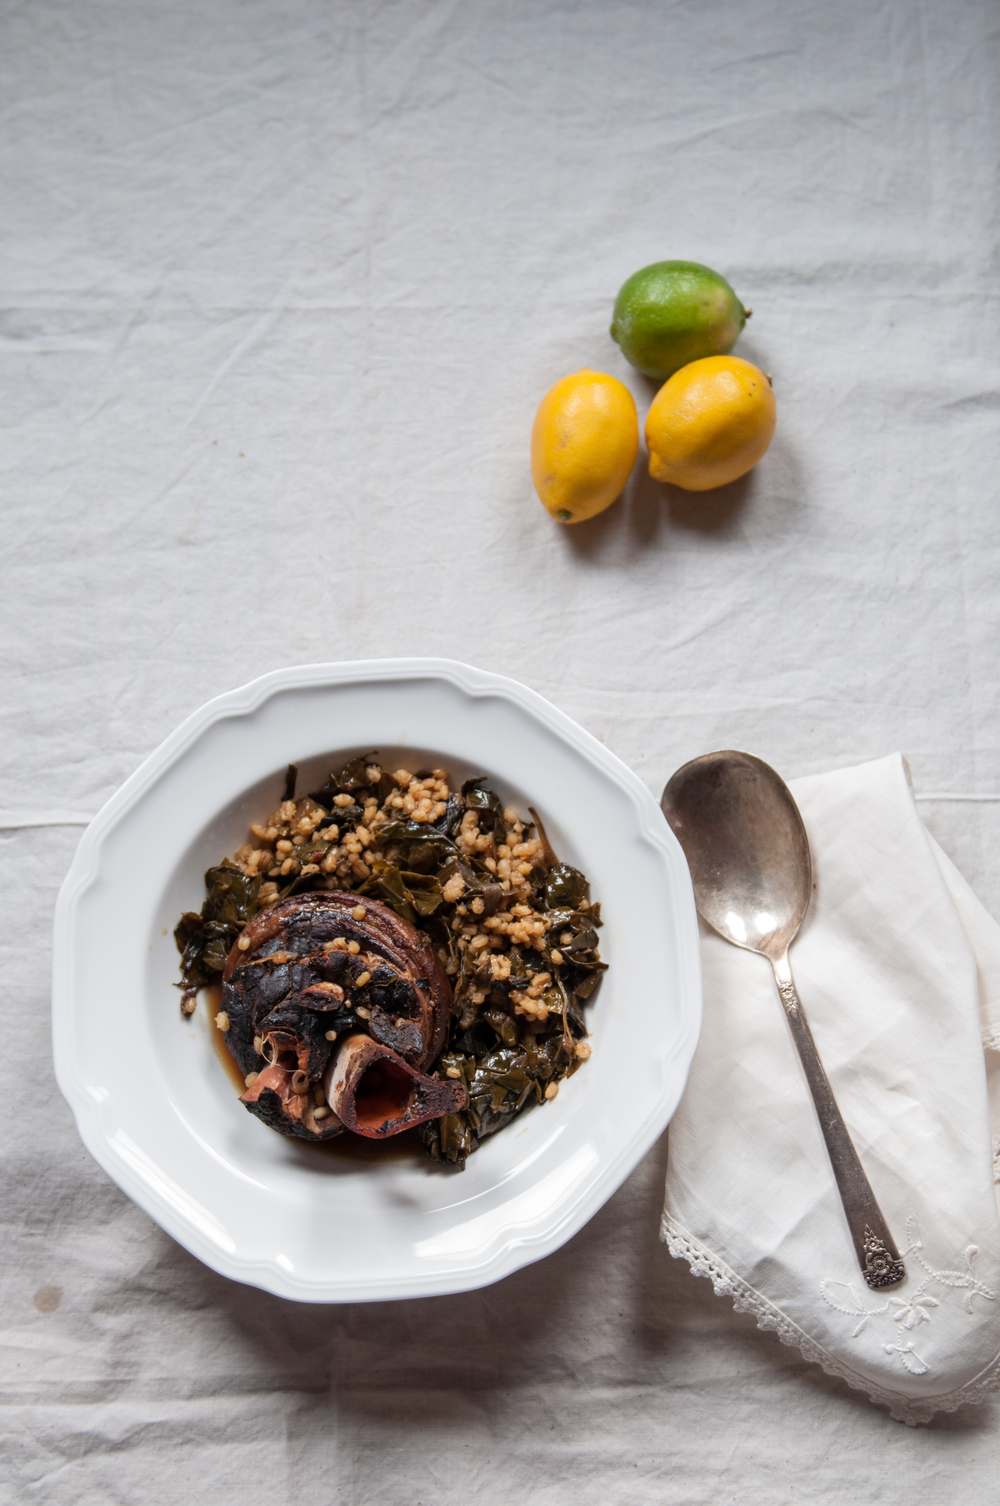 You can serve this slow cooked dish either as a risotto, shown here, or simply as a cured greens over grits or mash. Either way, the collards shine through with splendid warmth